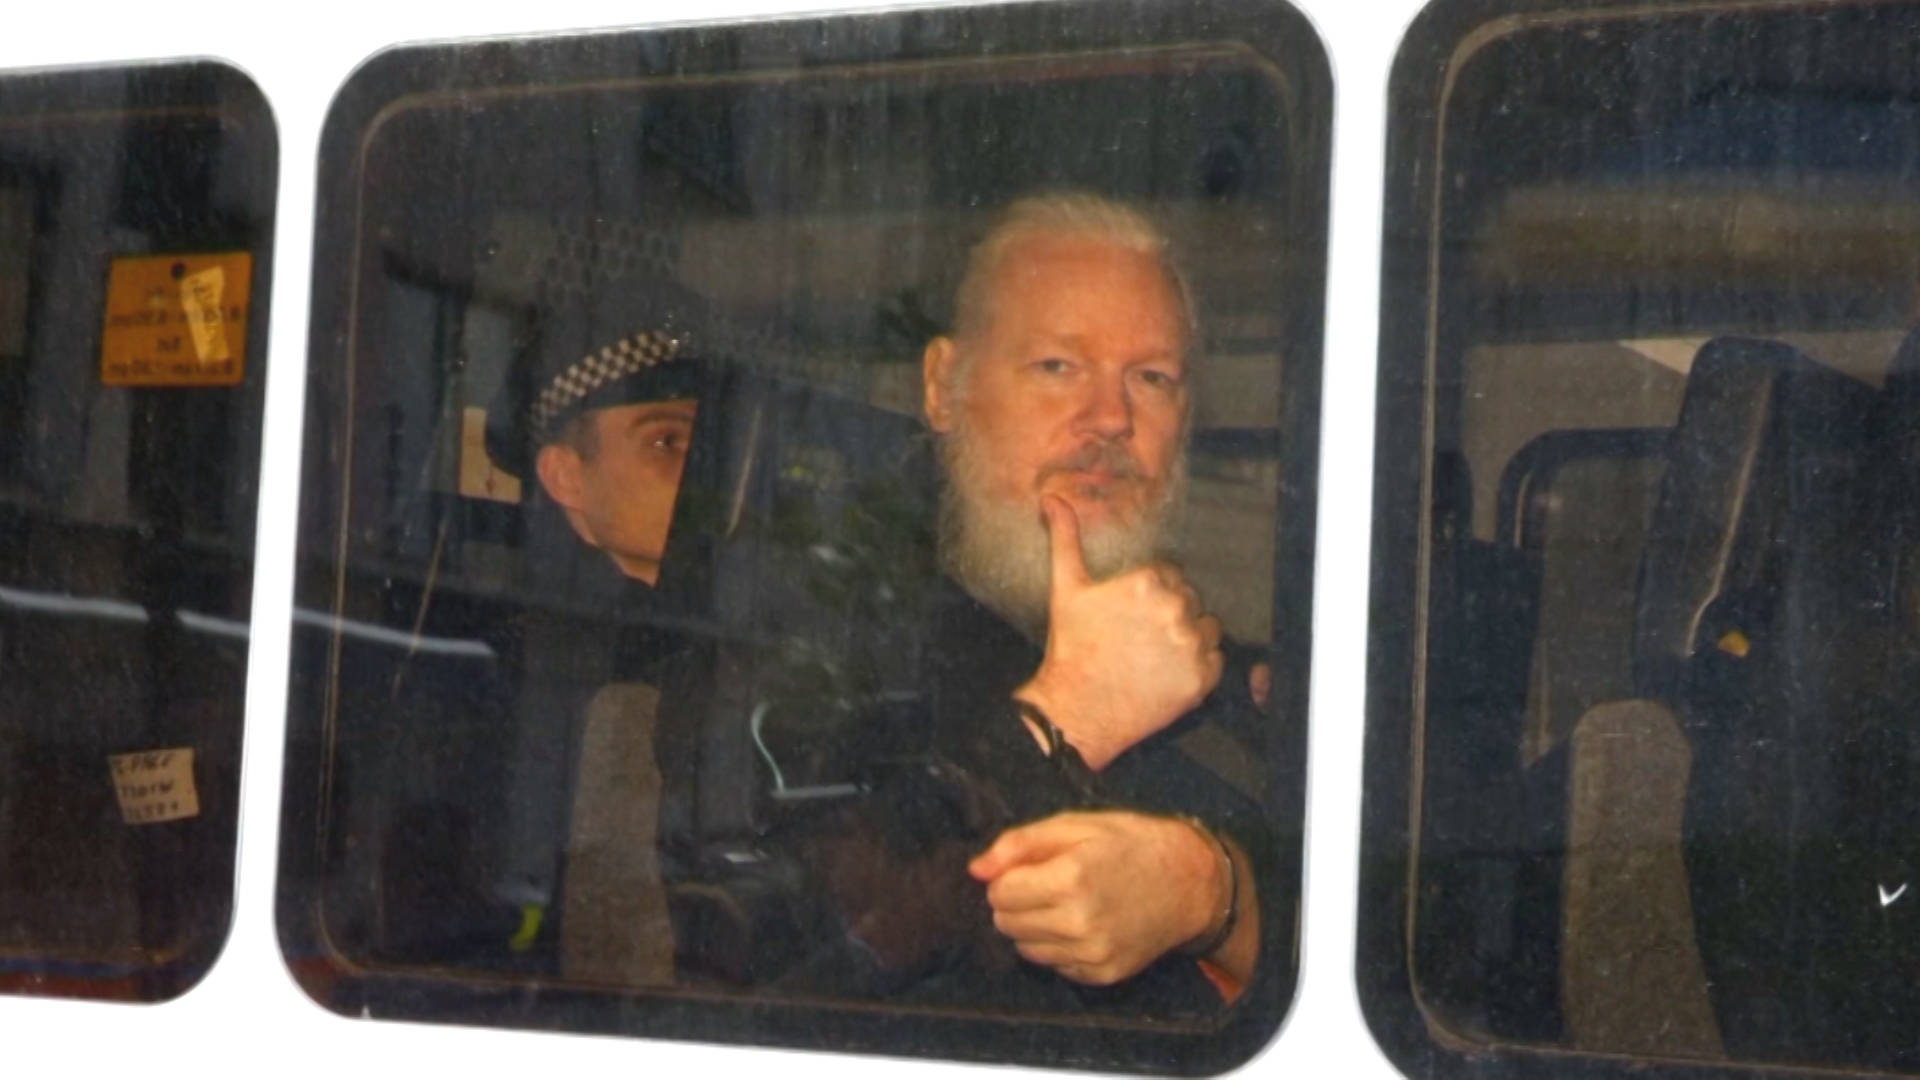 Sweden Requests Detention of Assange as WikiLeaks Accuses U.S. of Illegally Seizing His Property